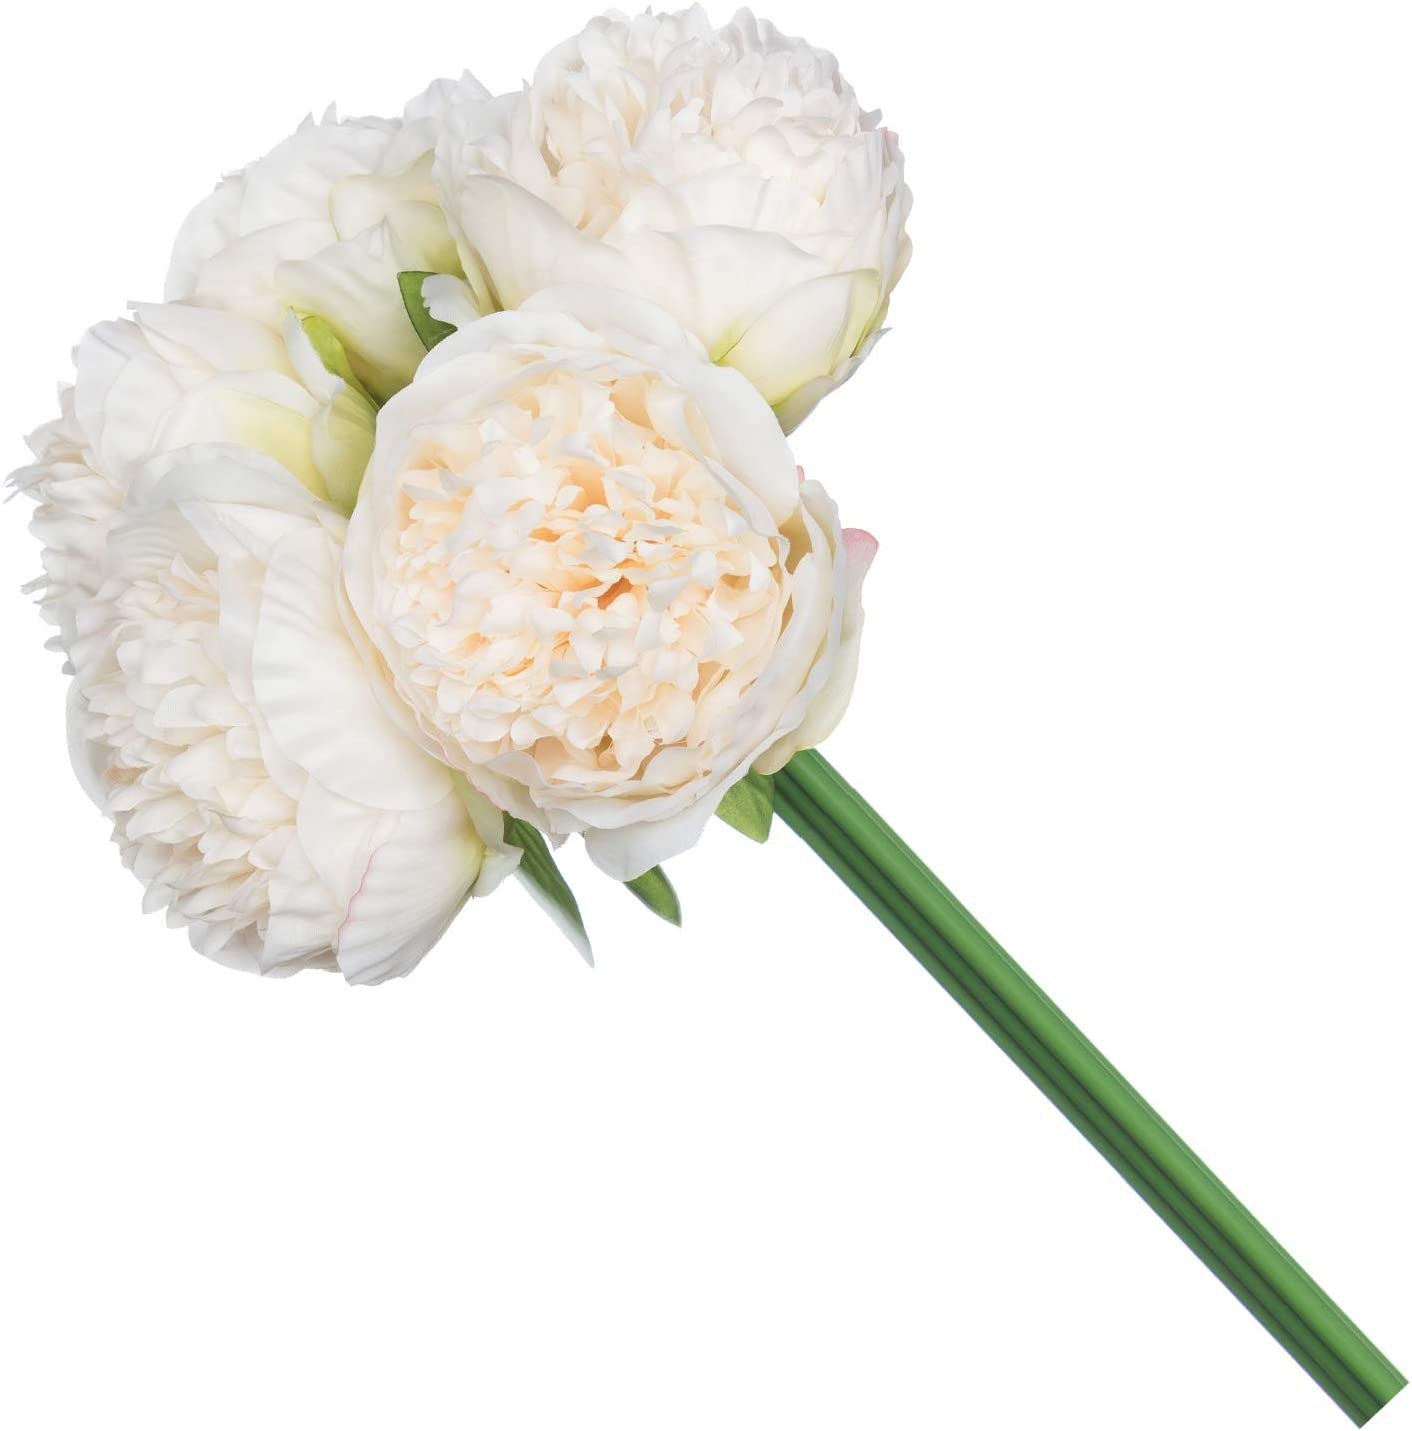 Royal Imports Artificial Peony Flowers, Silk Peonies, Use in Floral Arrangements, Bouquets, Wreaths, Crafts, Wedding, Home Decor - 5 Single Stems - Ivory